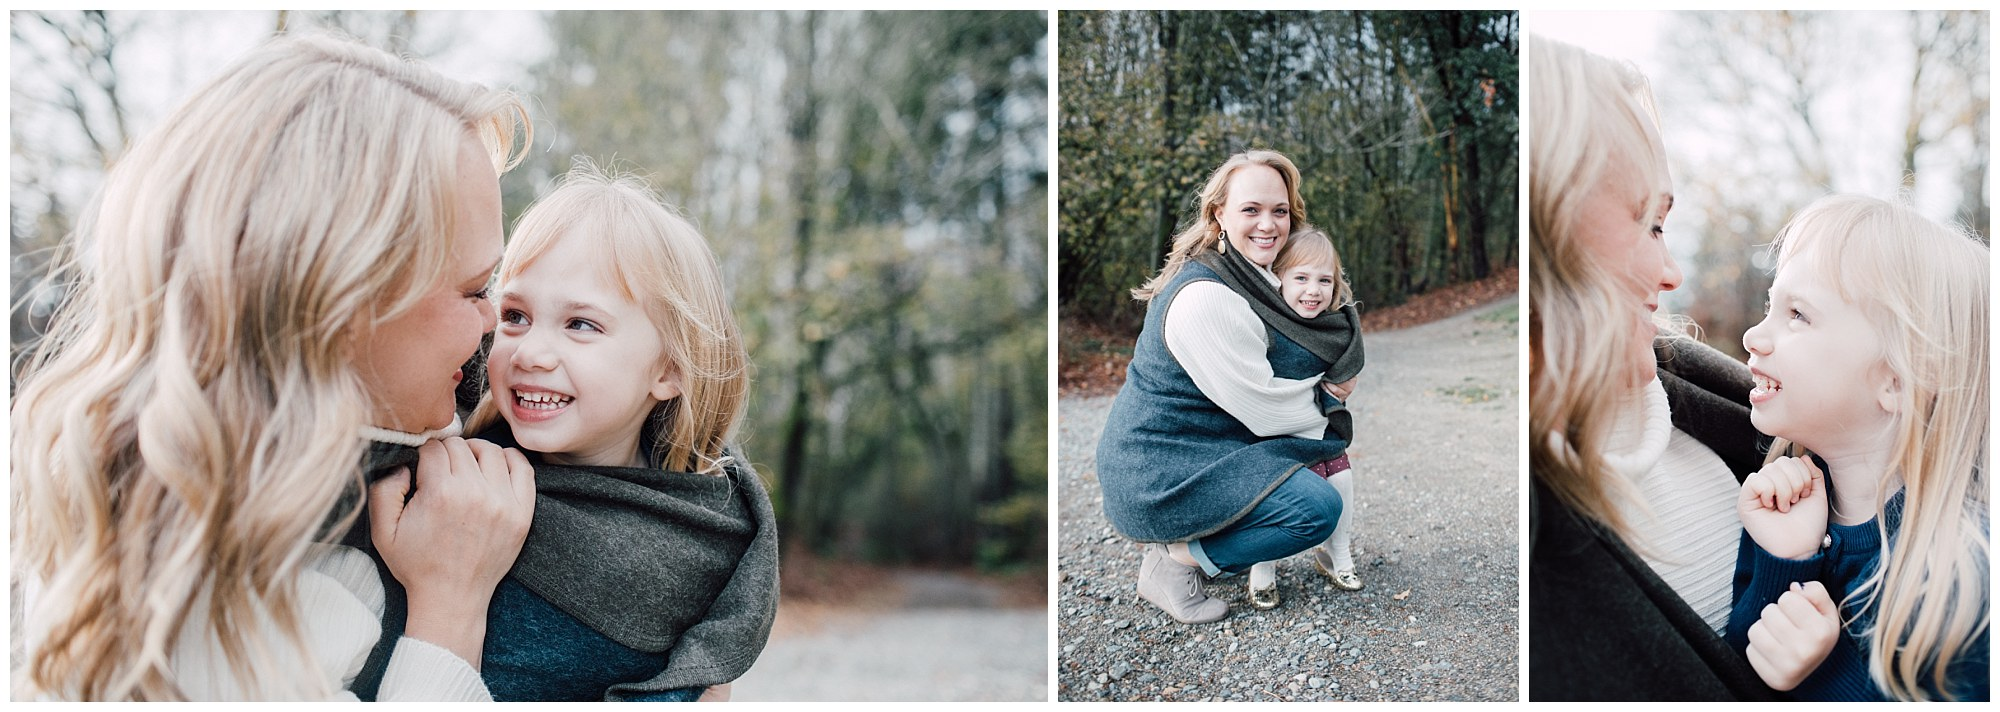 the Happy Film Company - St. Edwards Park - Seattle Family Photography - mother daughter portraits winter forest